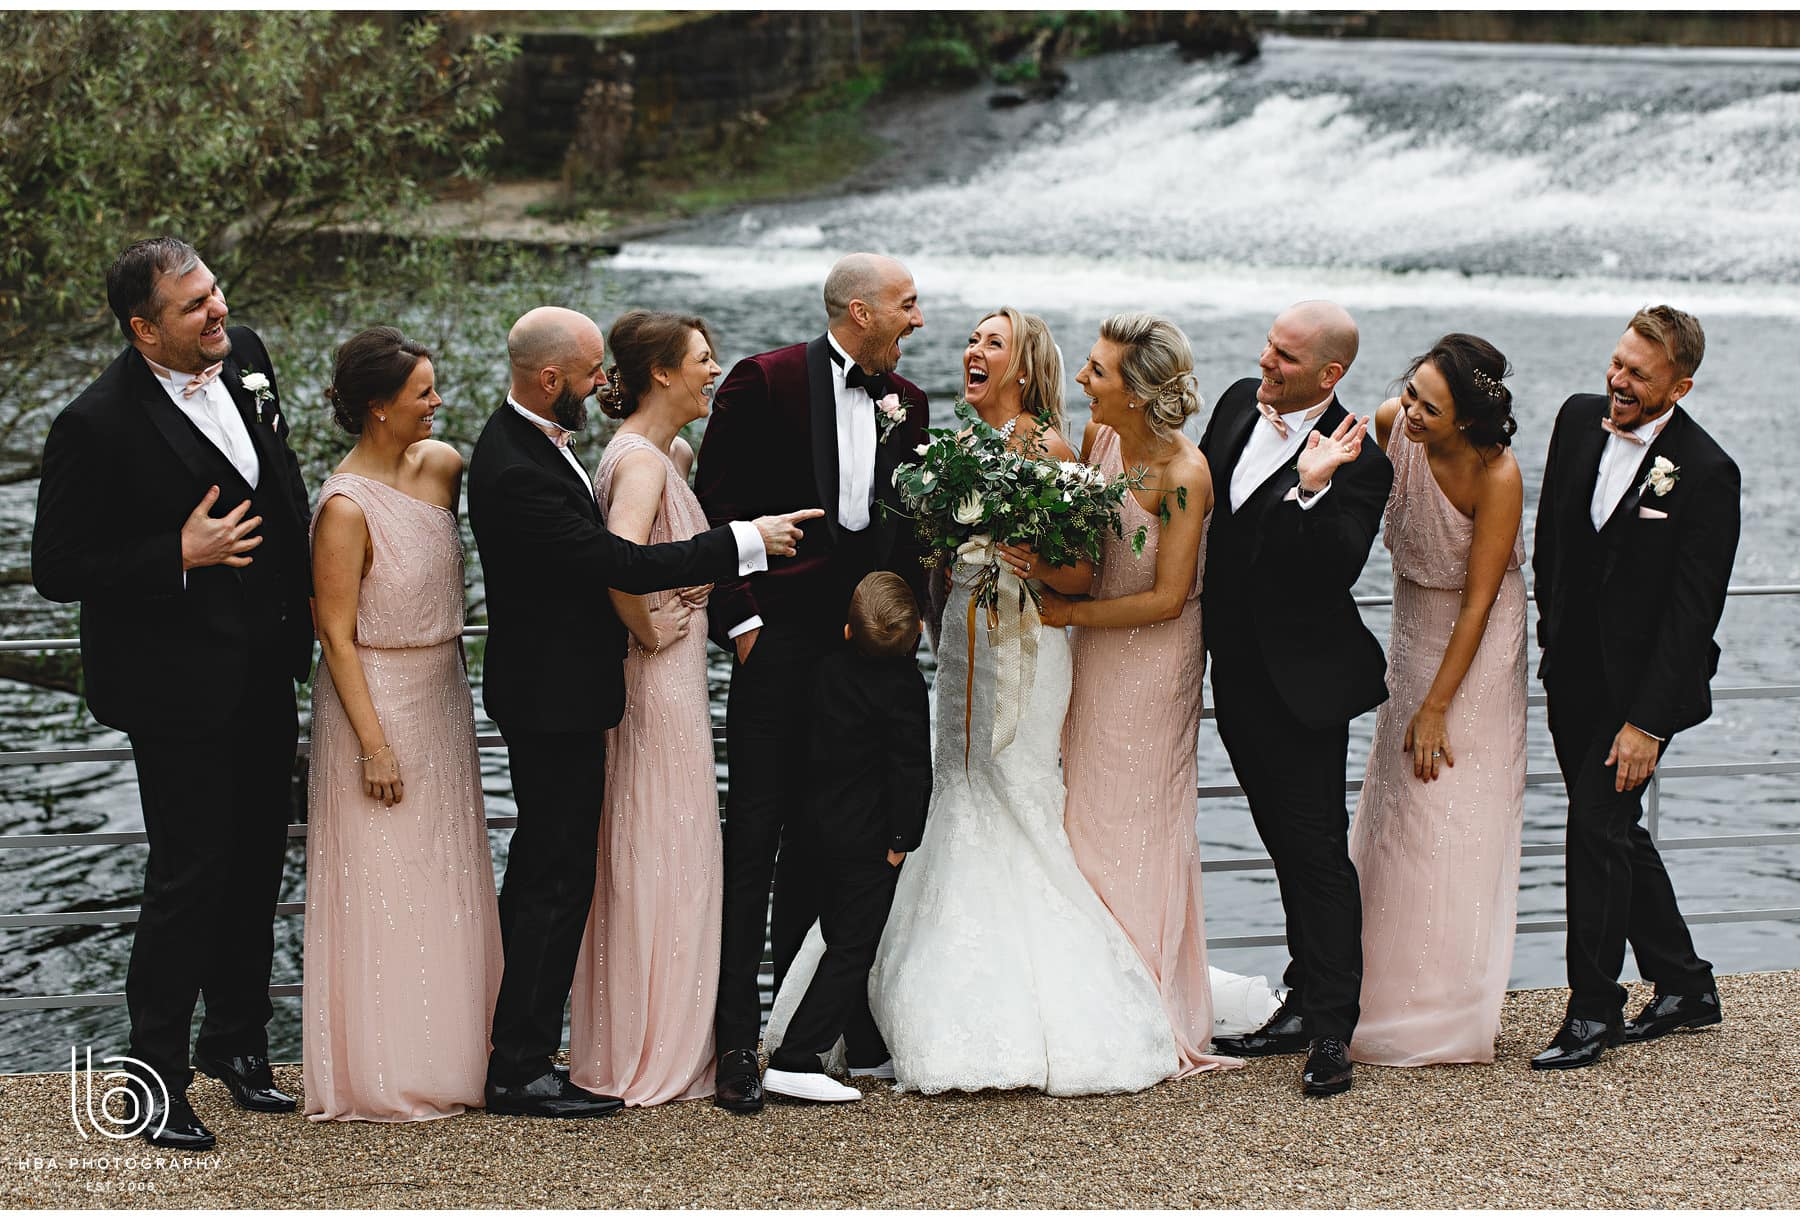 the bride & groom with their wedding party by the river